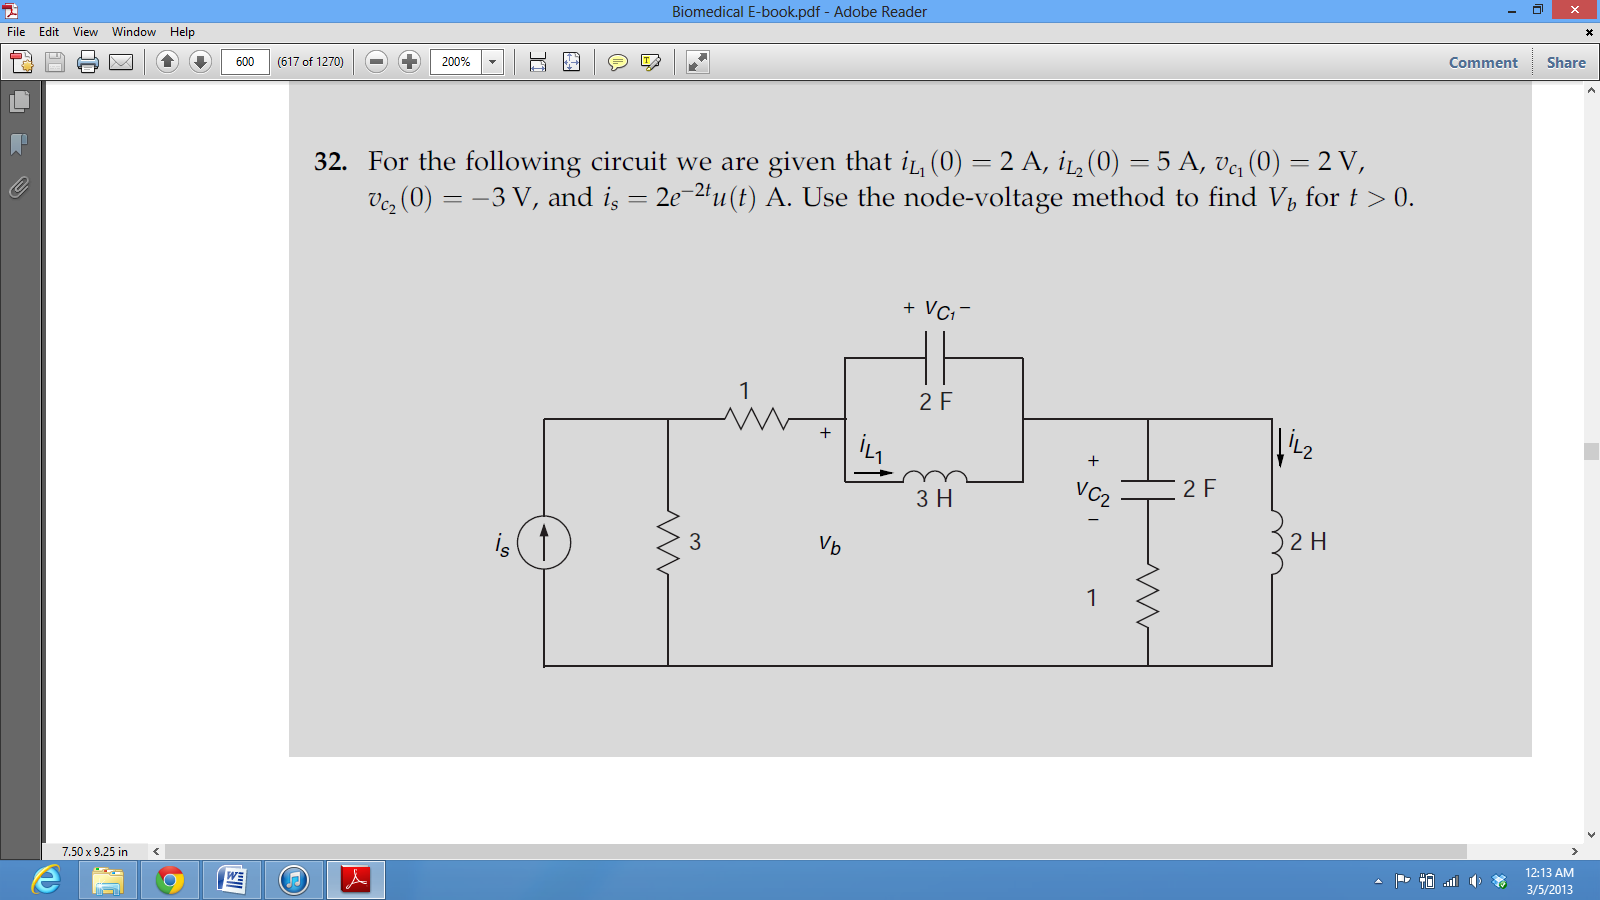 For the following circuit we are given that (0) =